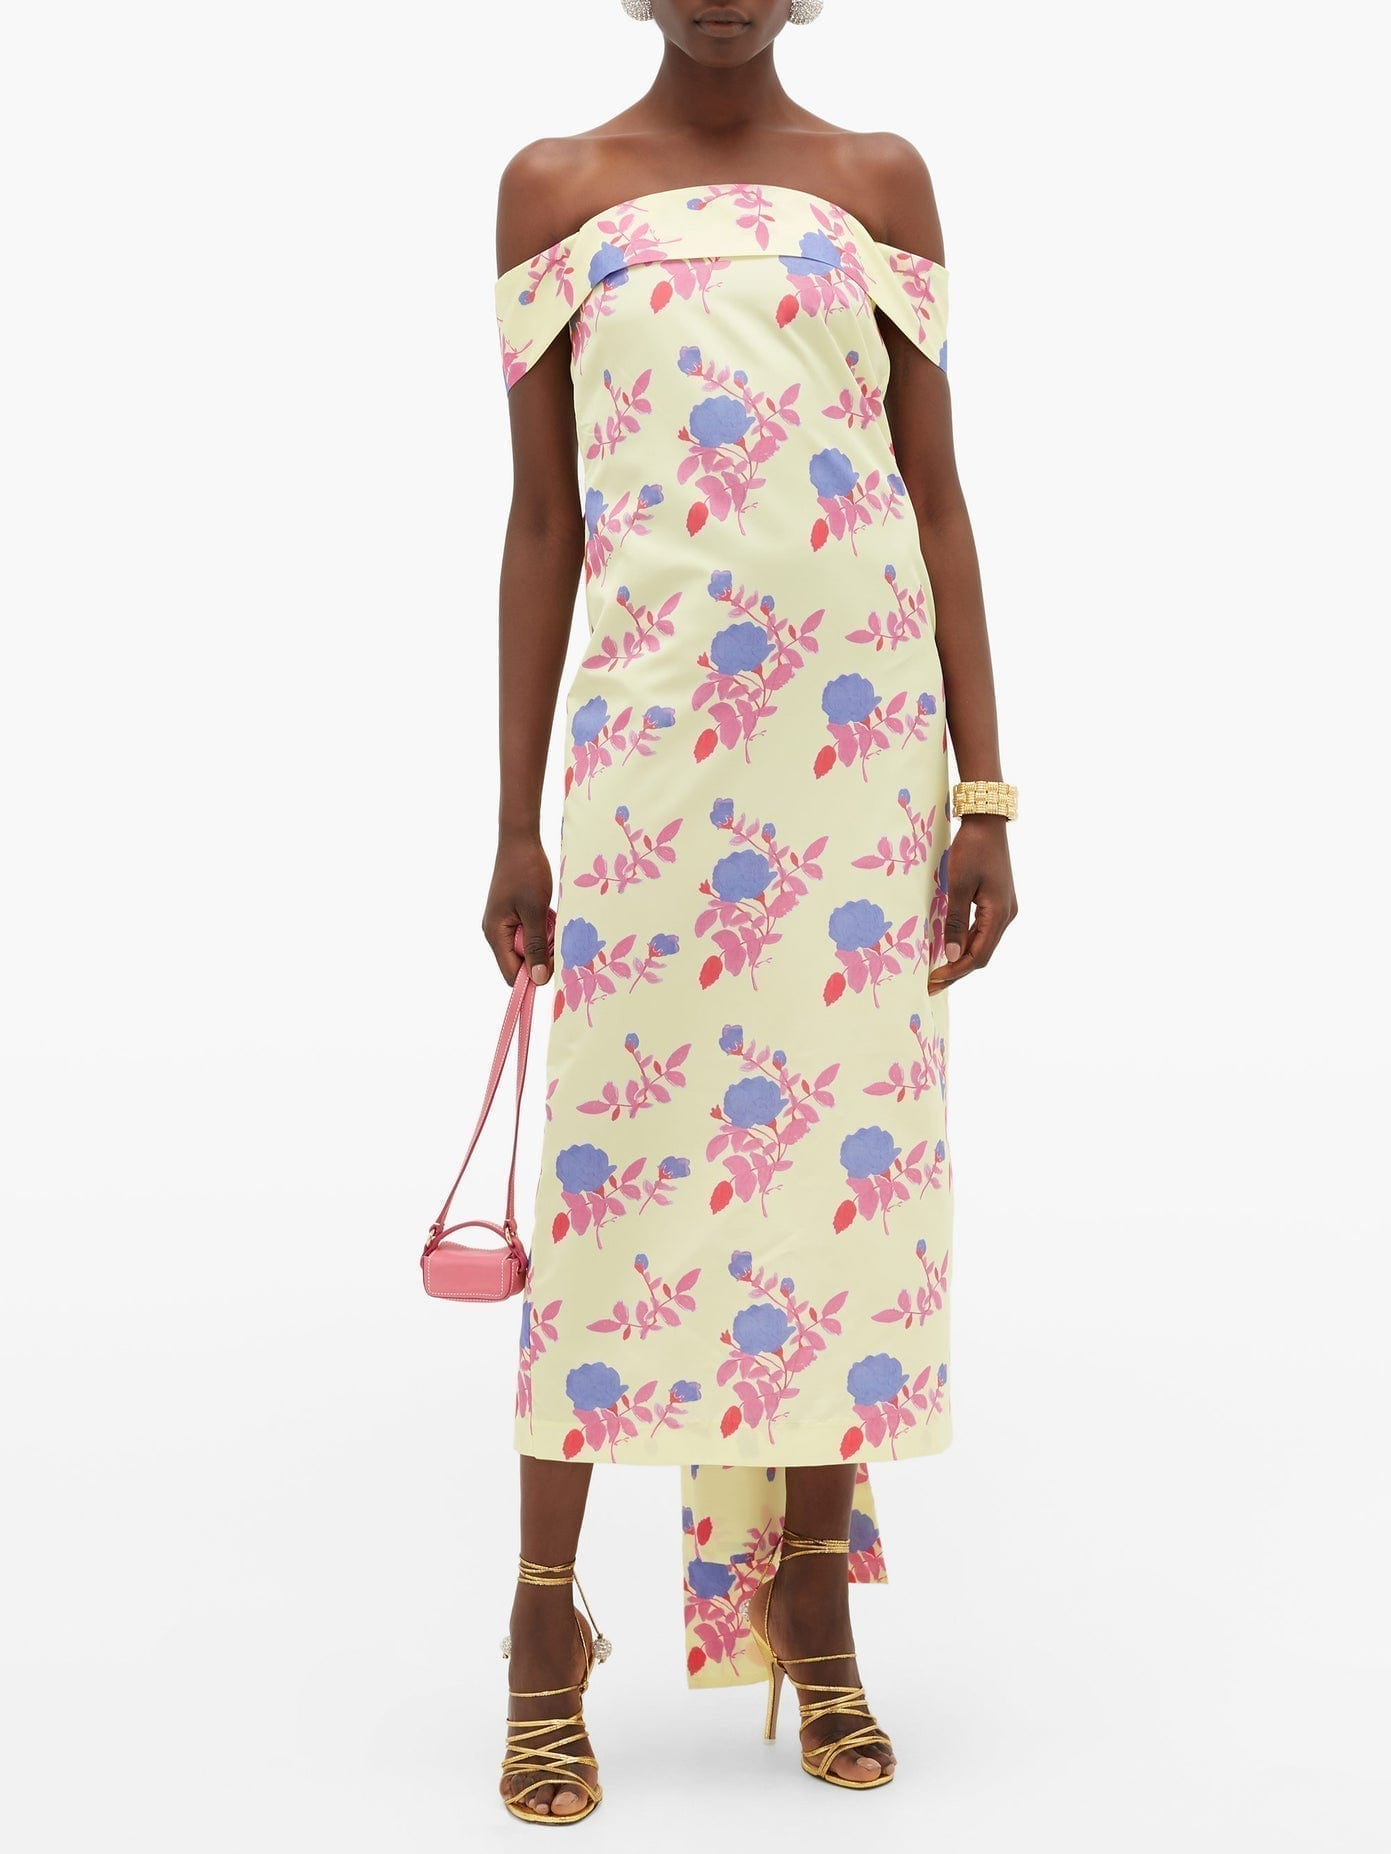 BERNADETTE Jullia Floral-Print Off-The-Shoulder Midi Dress